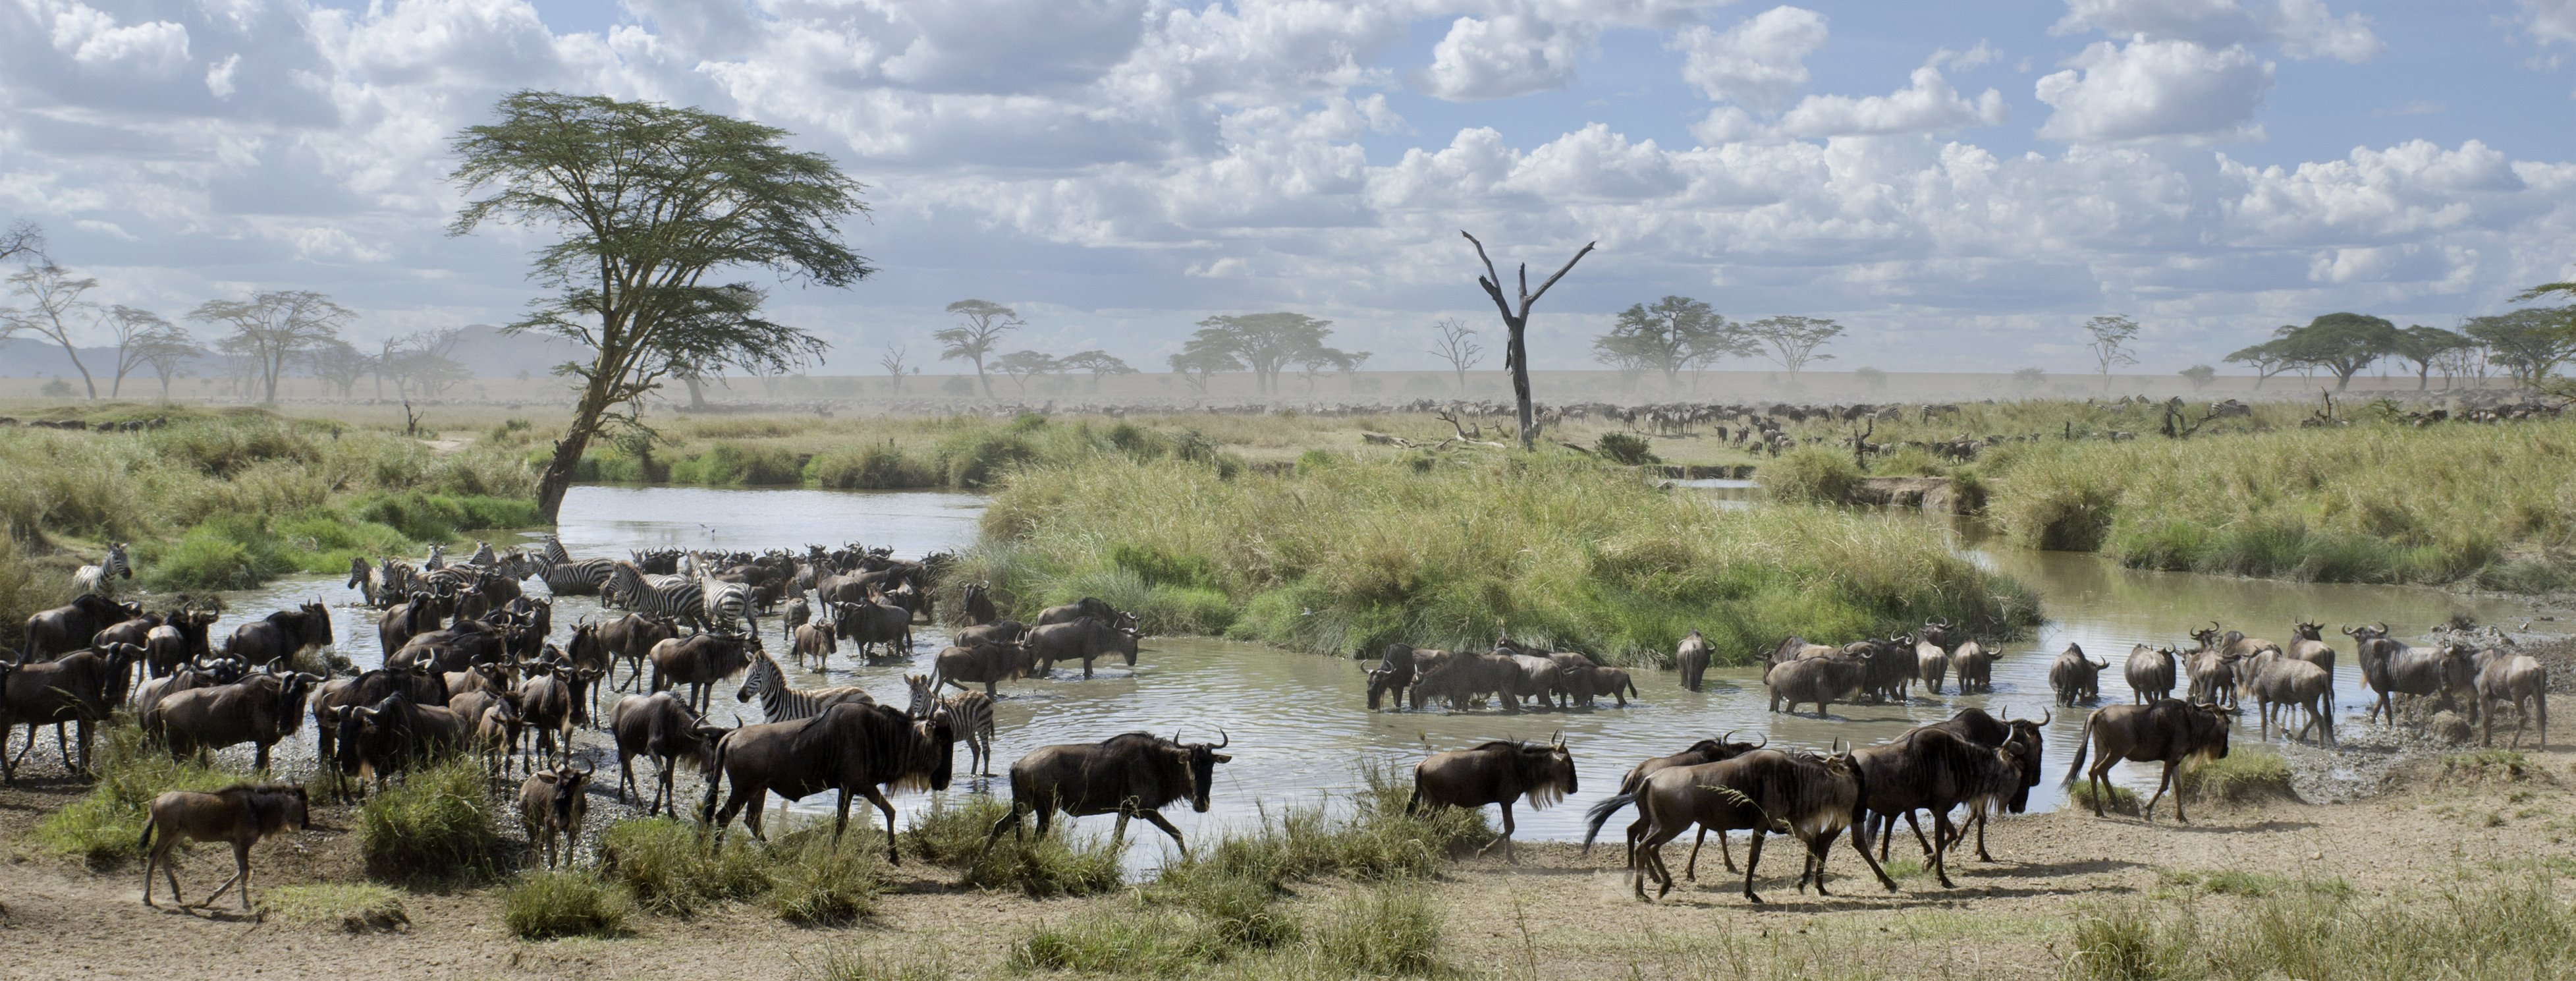 The Great Migration – everything you need to know about calving in the southern Serengeti, Tanzania